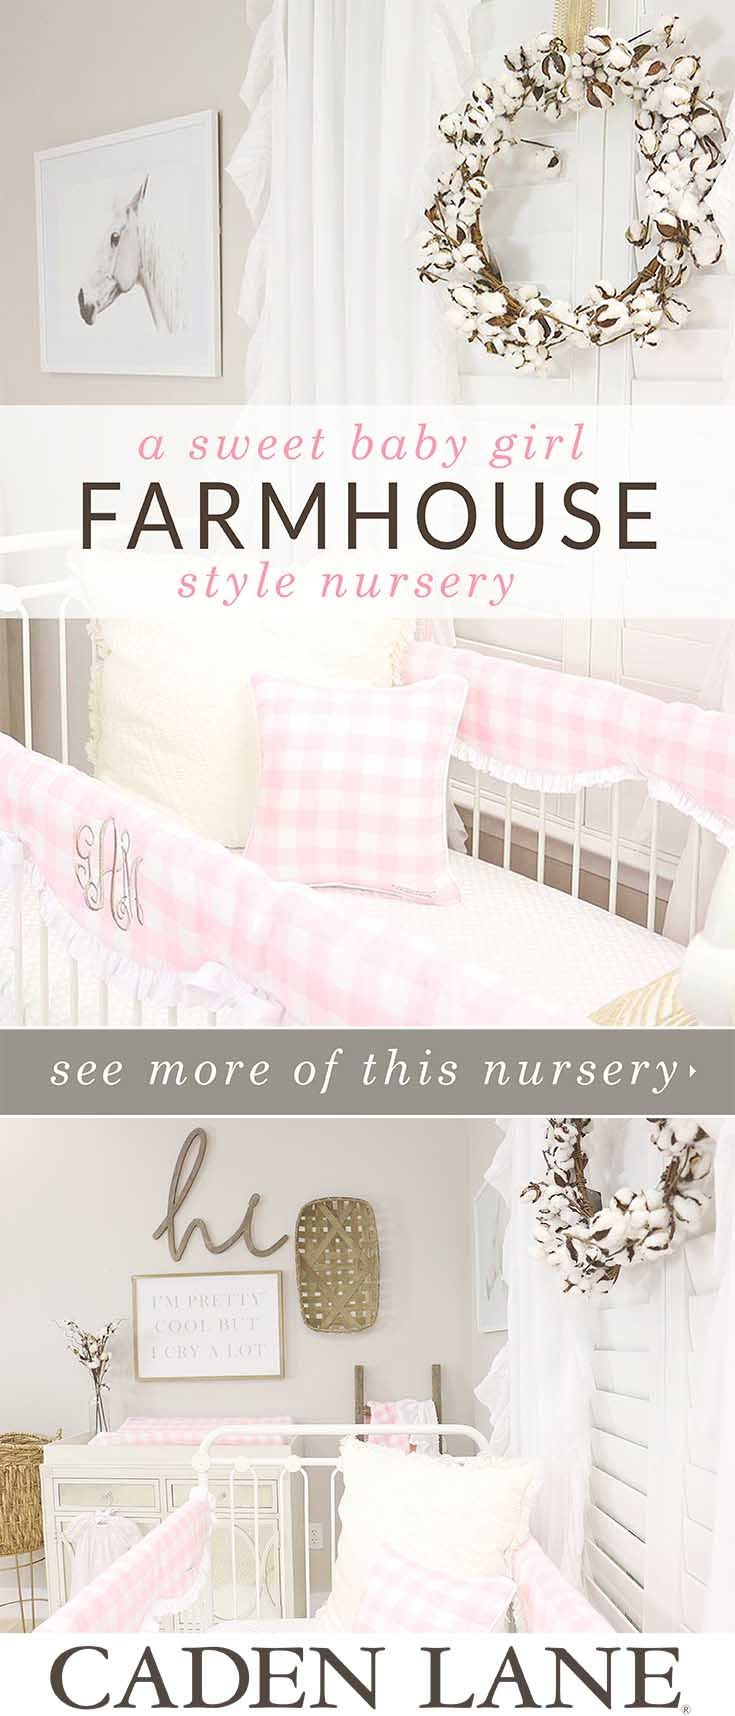 This is the Sweetest Pink & Neutral baby girl nursery. Loving the rustic farmhouse style!